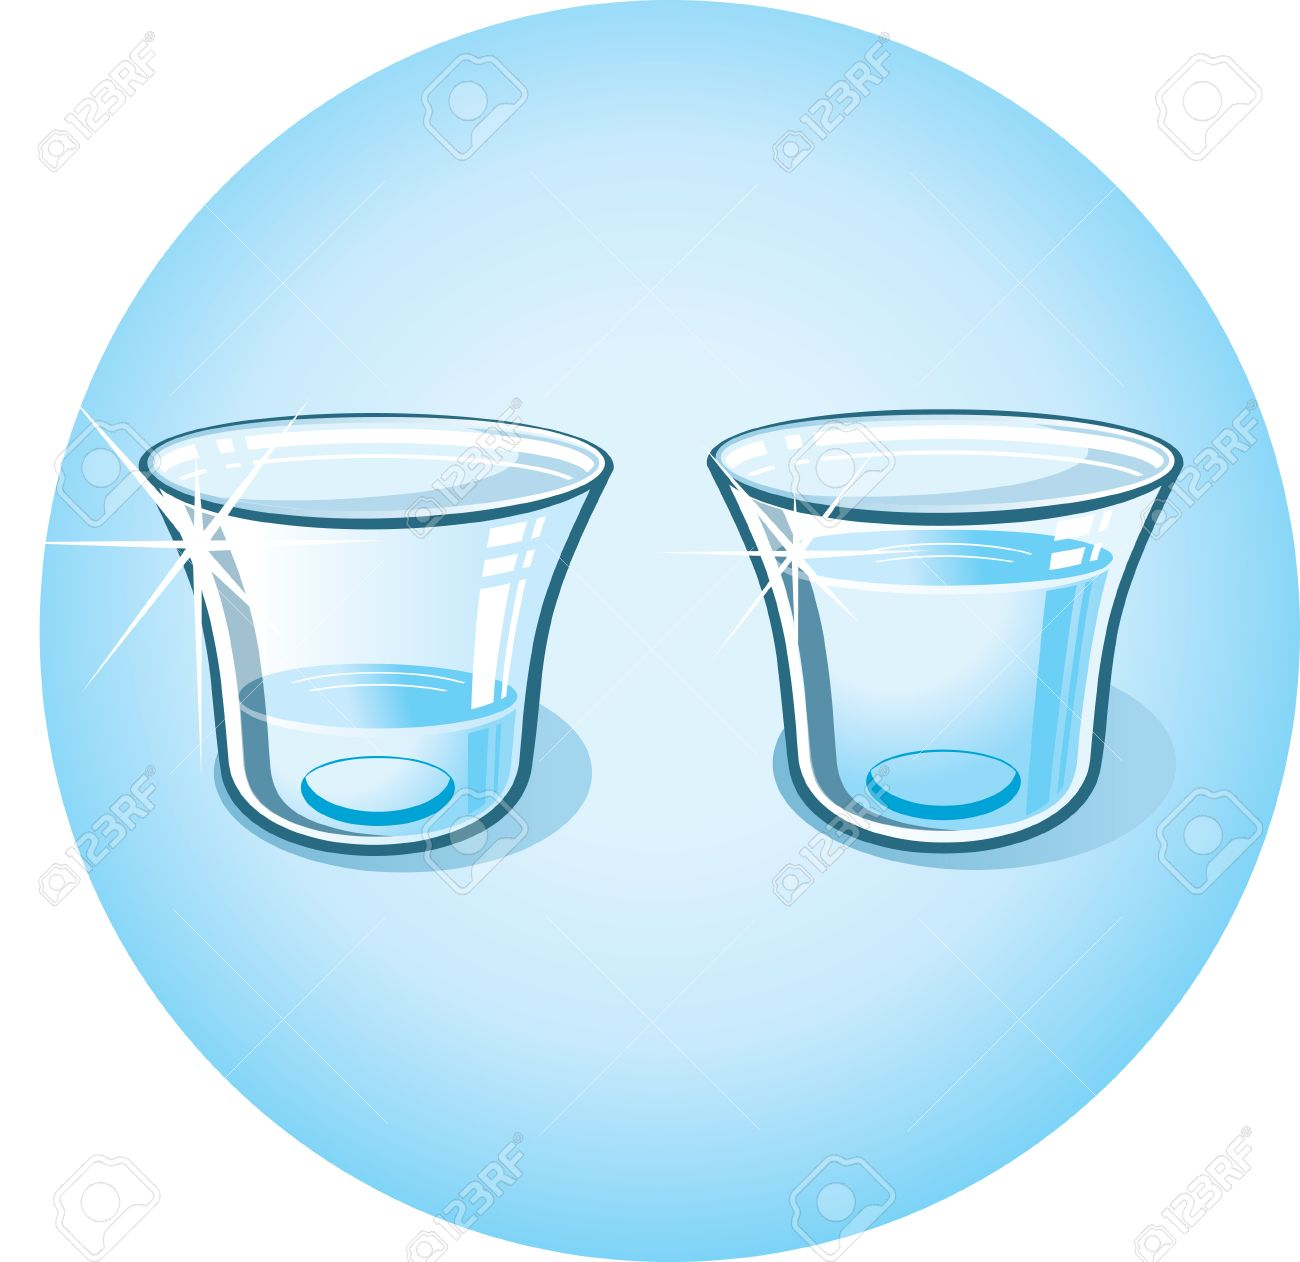 Glass With Clear Water. Clip Art Royalty Free Cliparts, Vectors ...